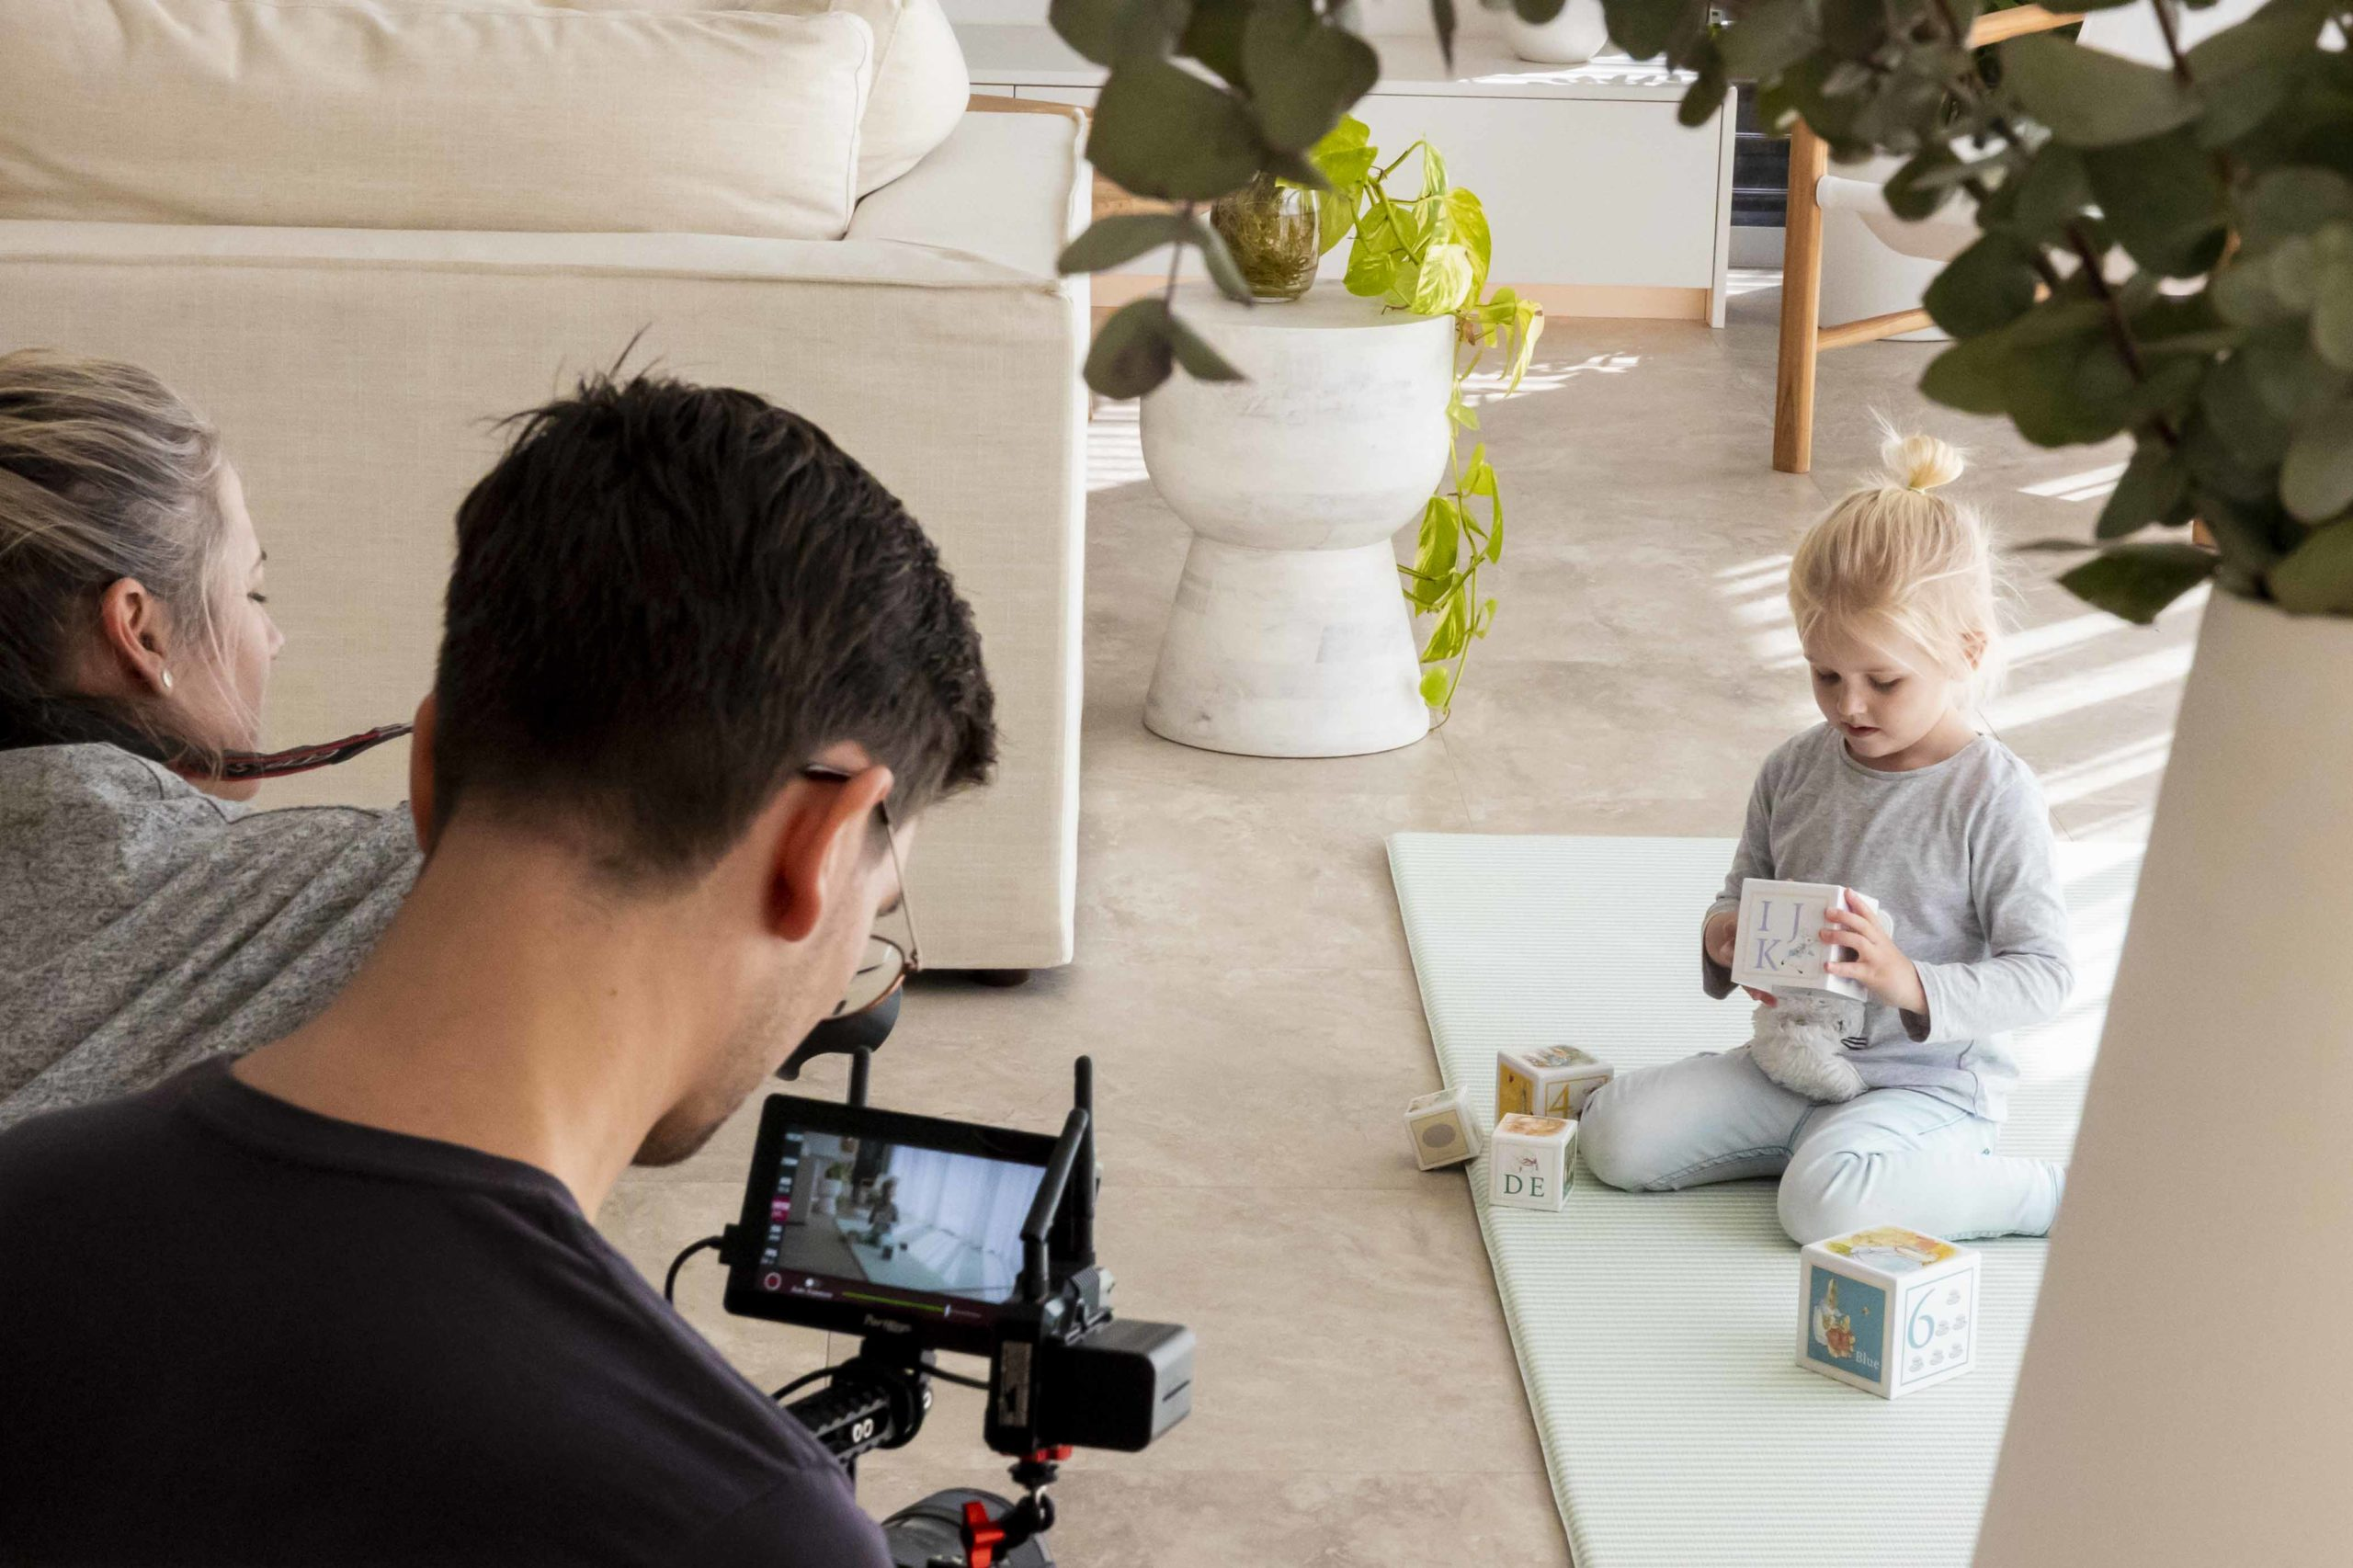 Kid playing on a Luxe at Plays mat while AOV Films is filming a commercial